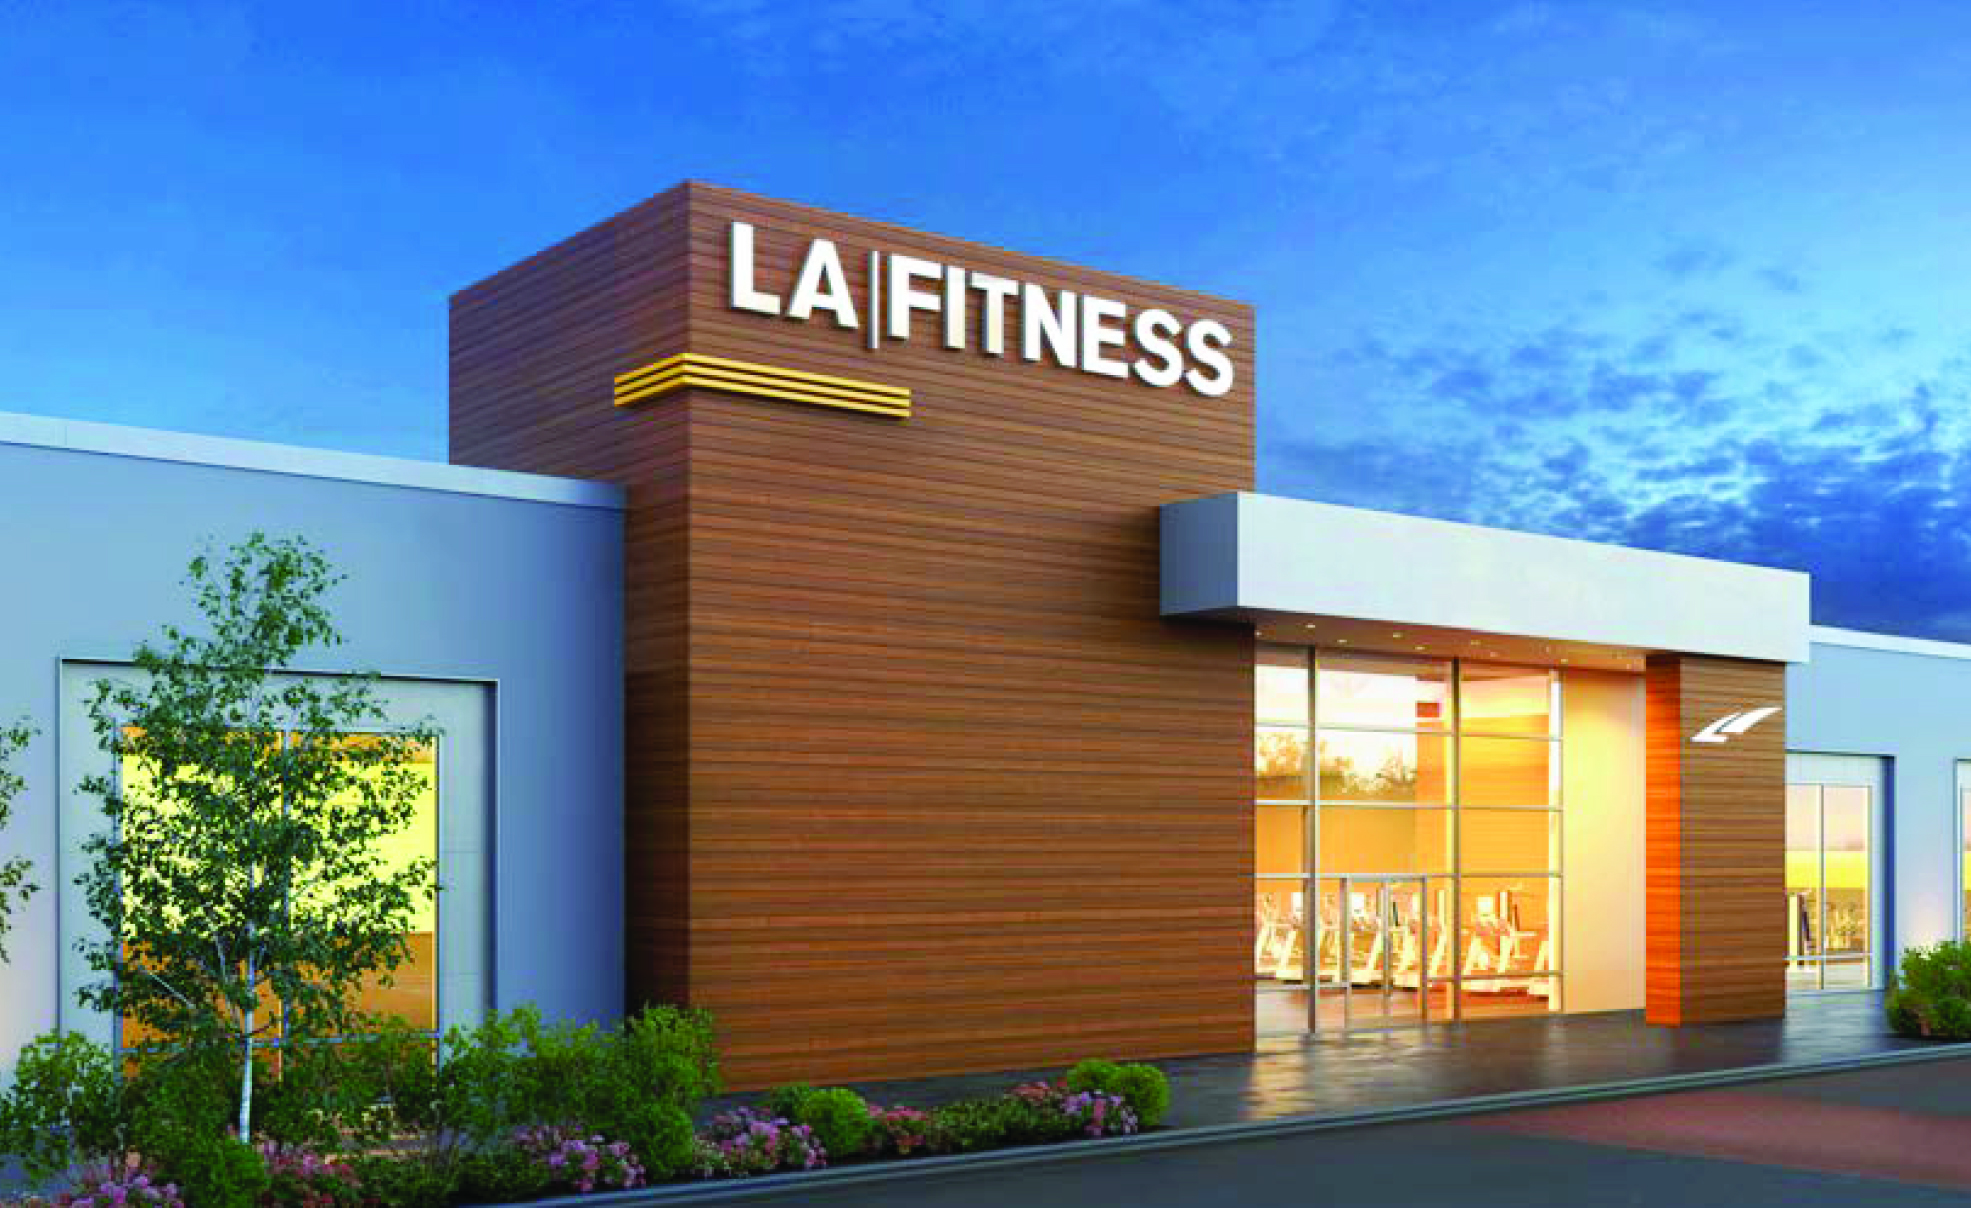 Weathersfield Commons LA Fitness